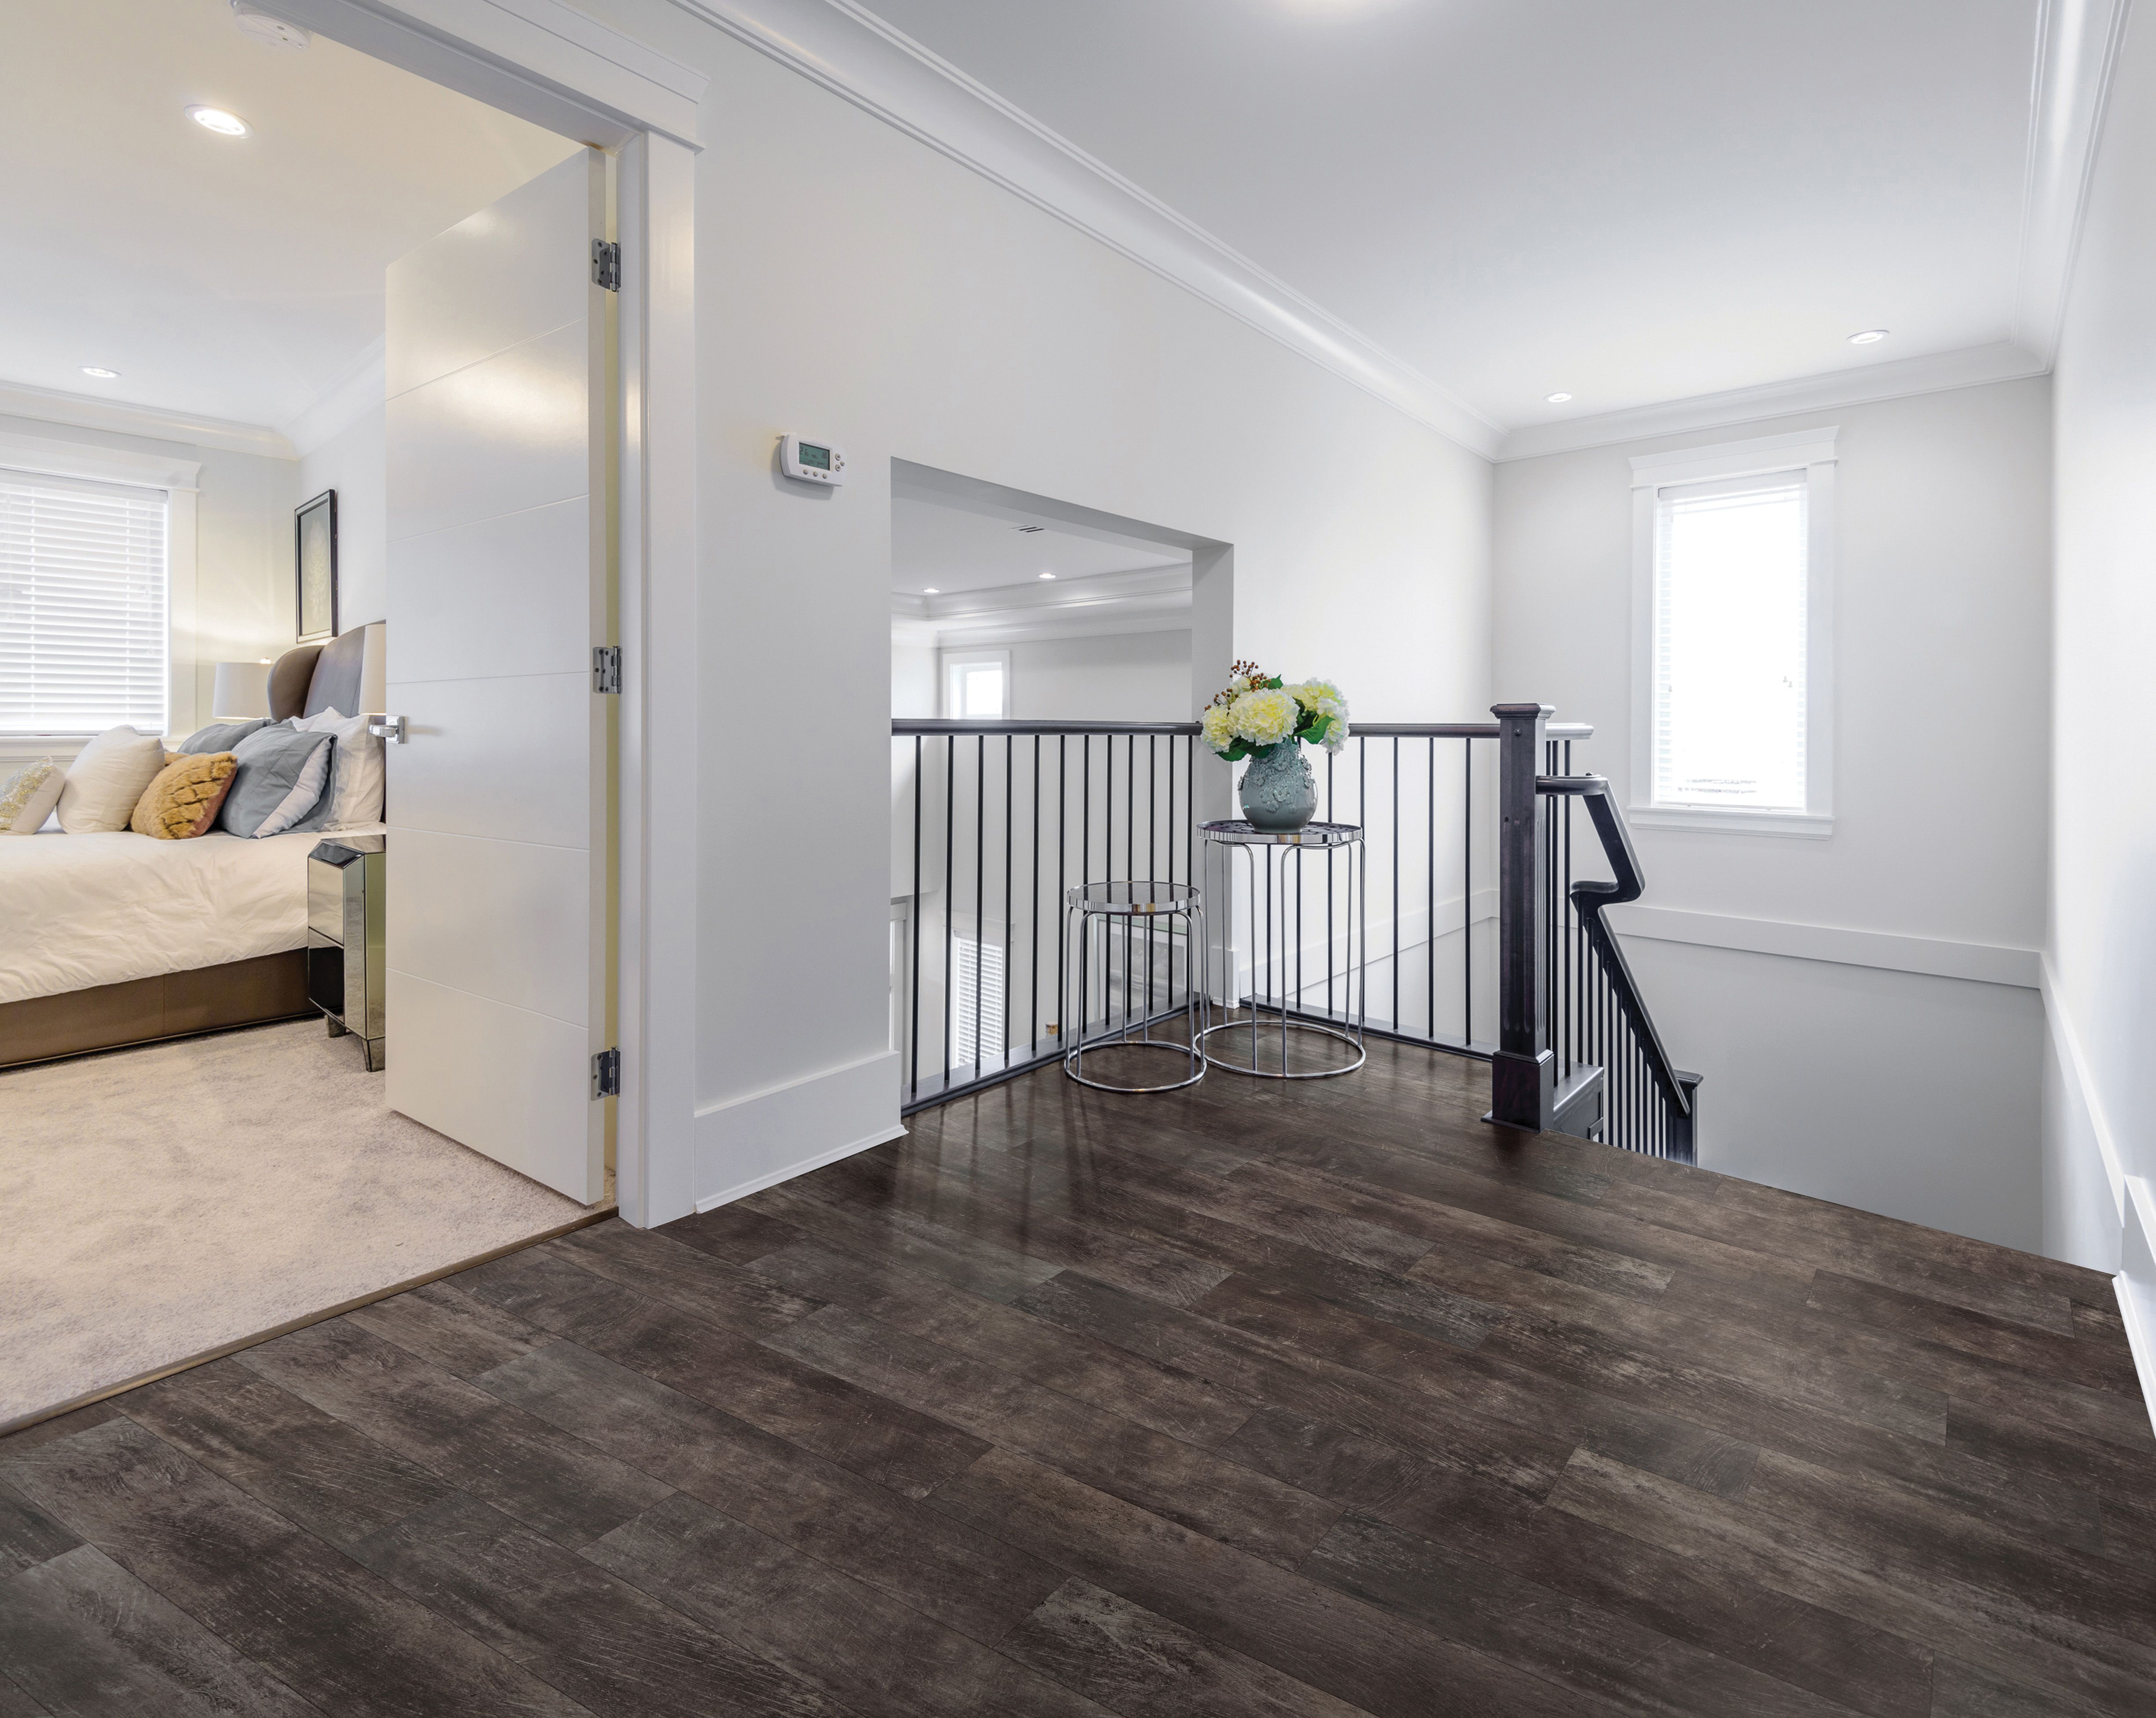 Masland Lvt Stainmaster Petprotect Cobblestone